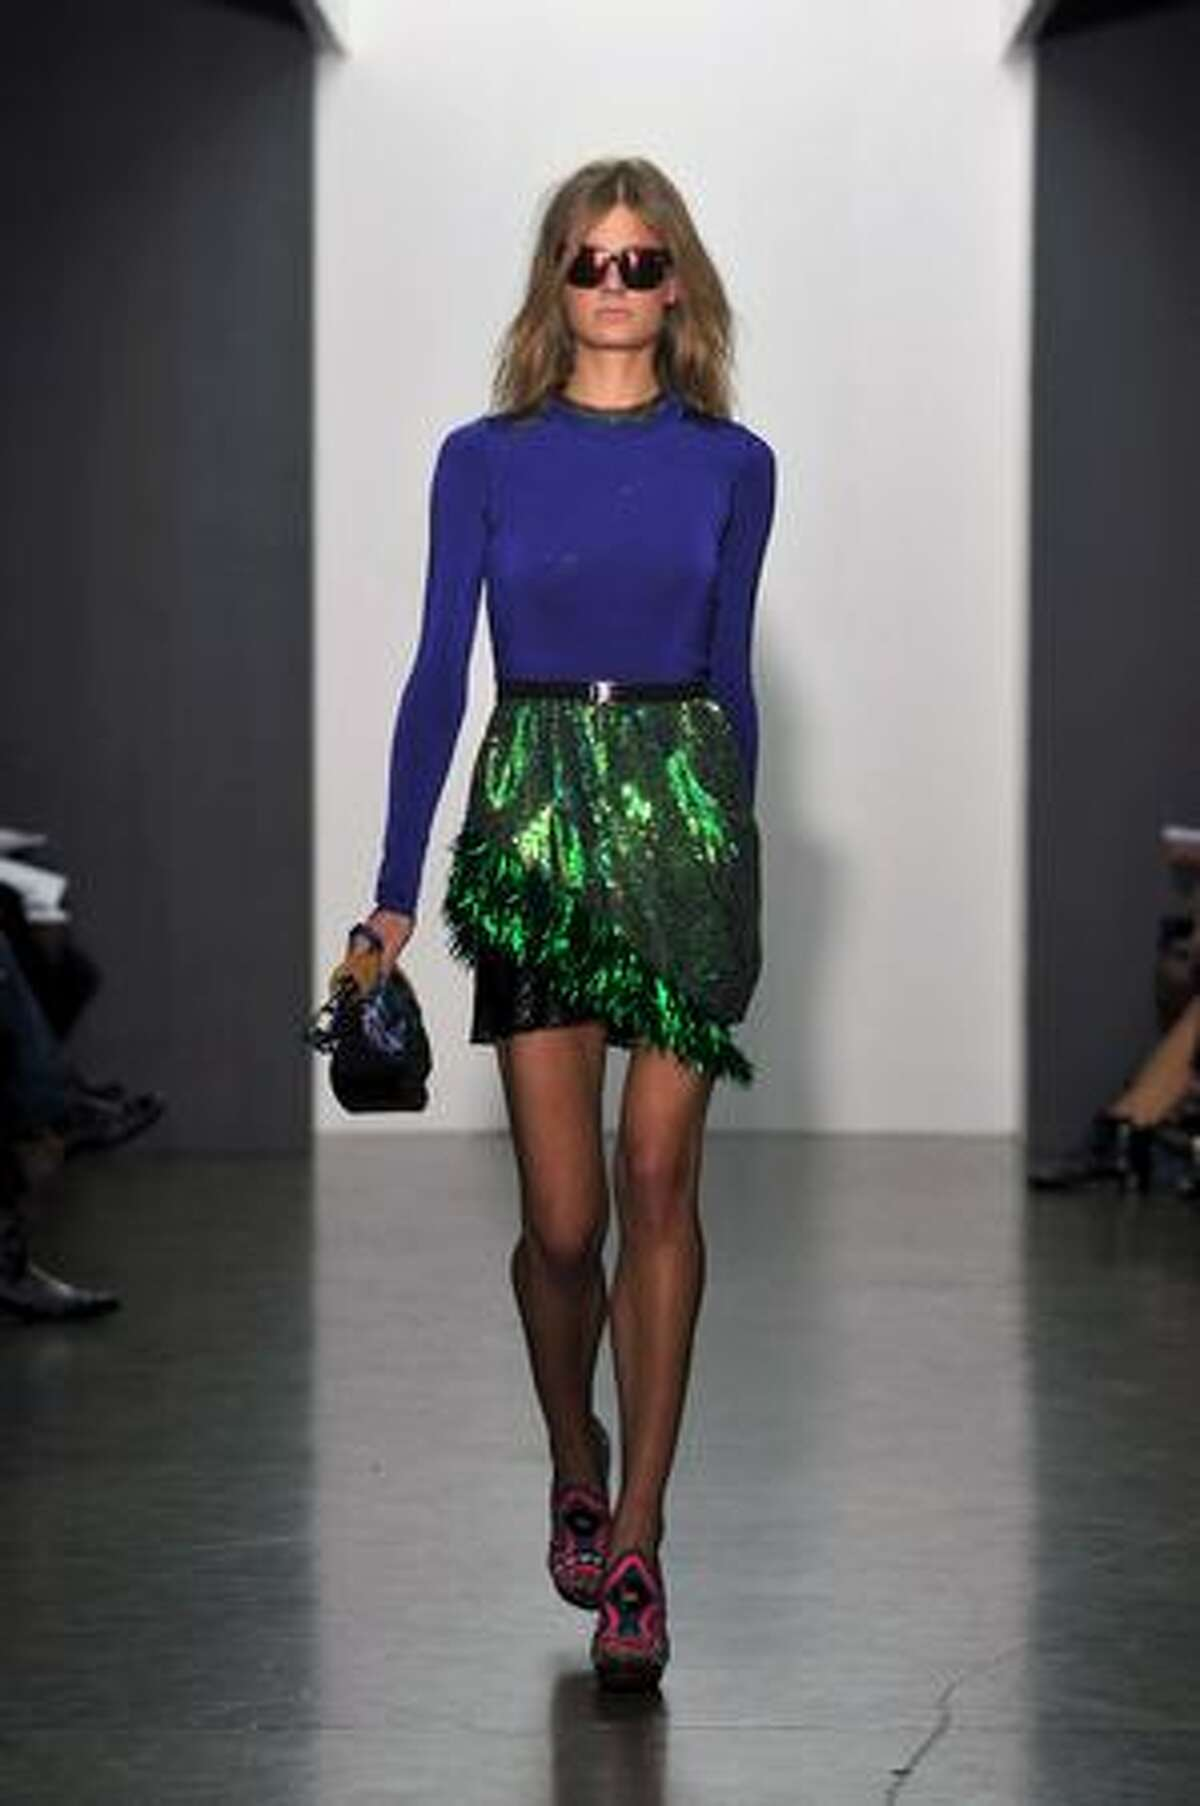 A model walks the runway at the Proenza Schouler spring 2010 fashion show at Milk Studios in New York on Wednesday, Sept. 16, 2009.